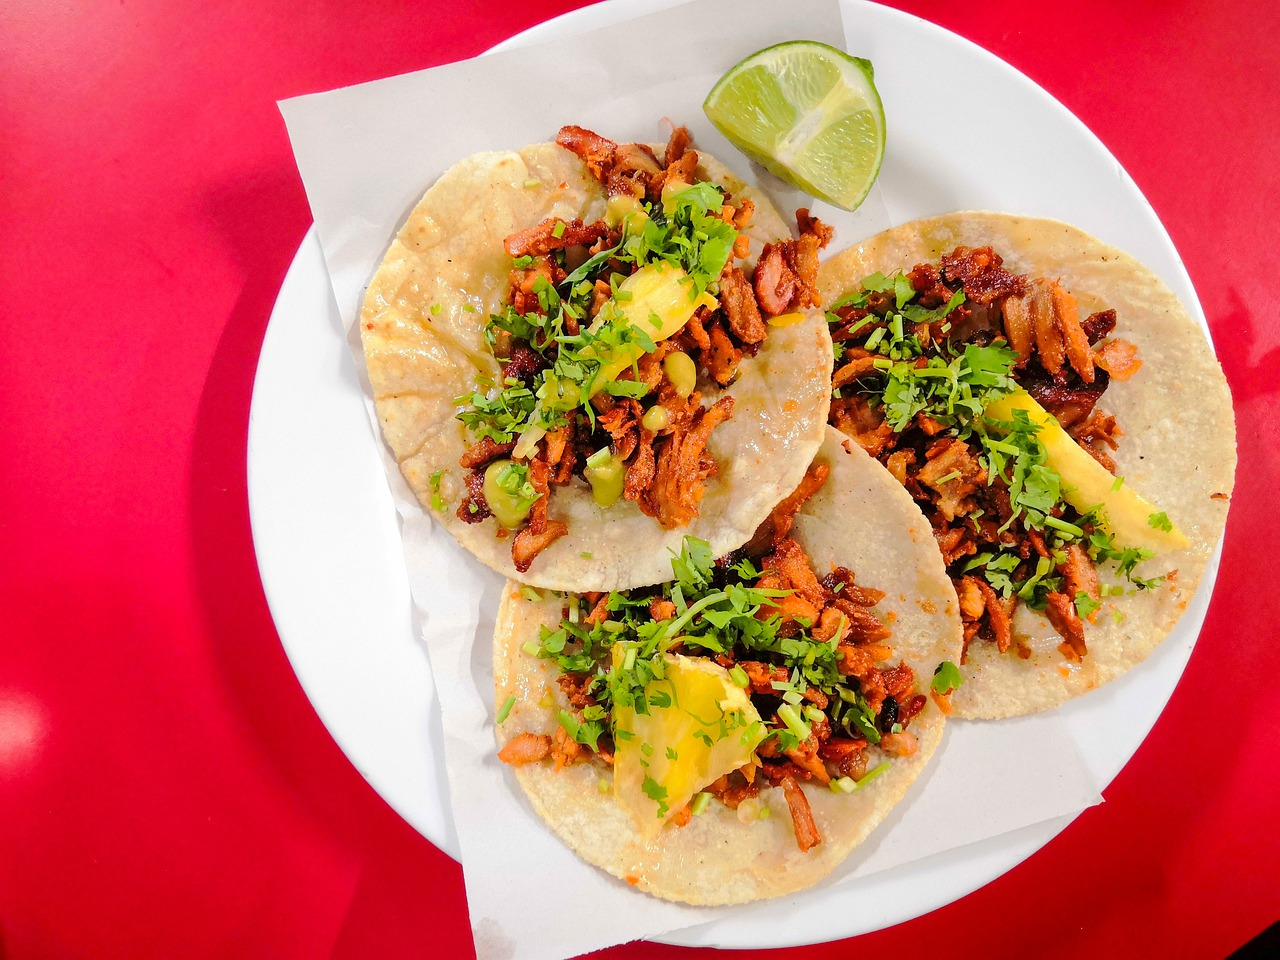 You will enjoy the tasty Mexican cuisine.